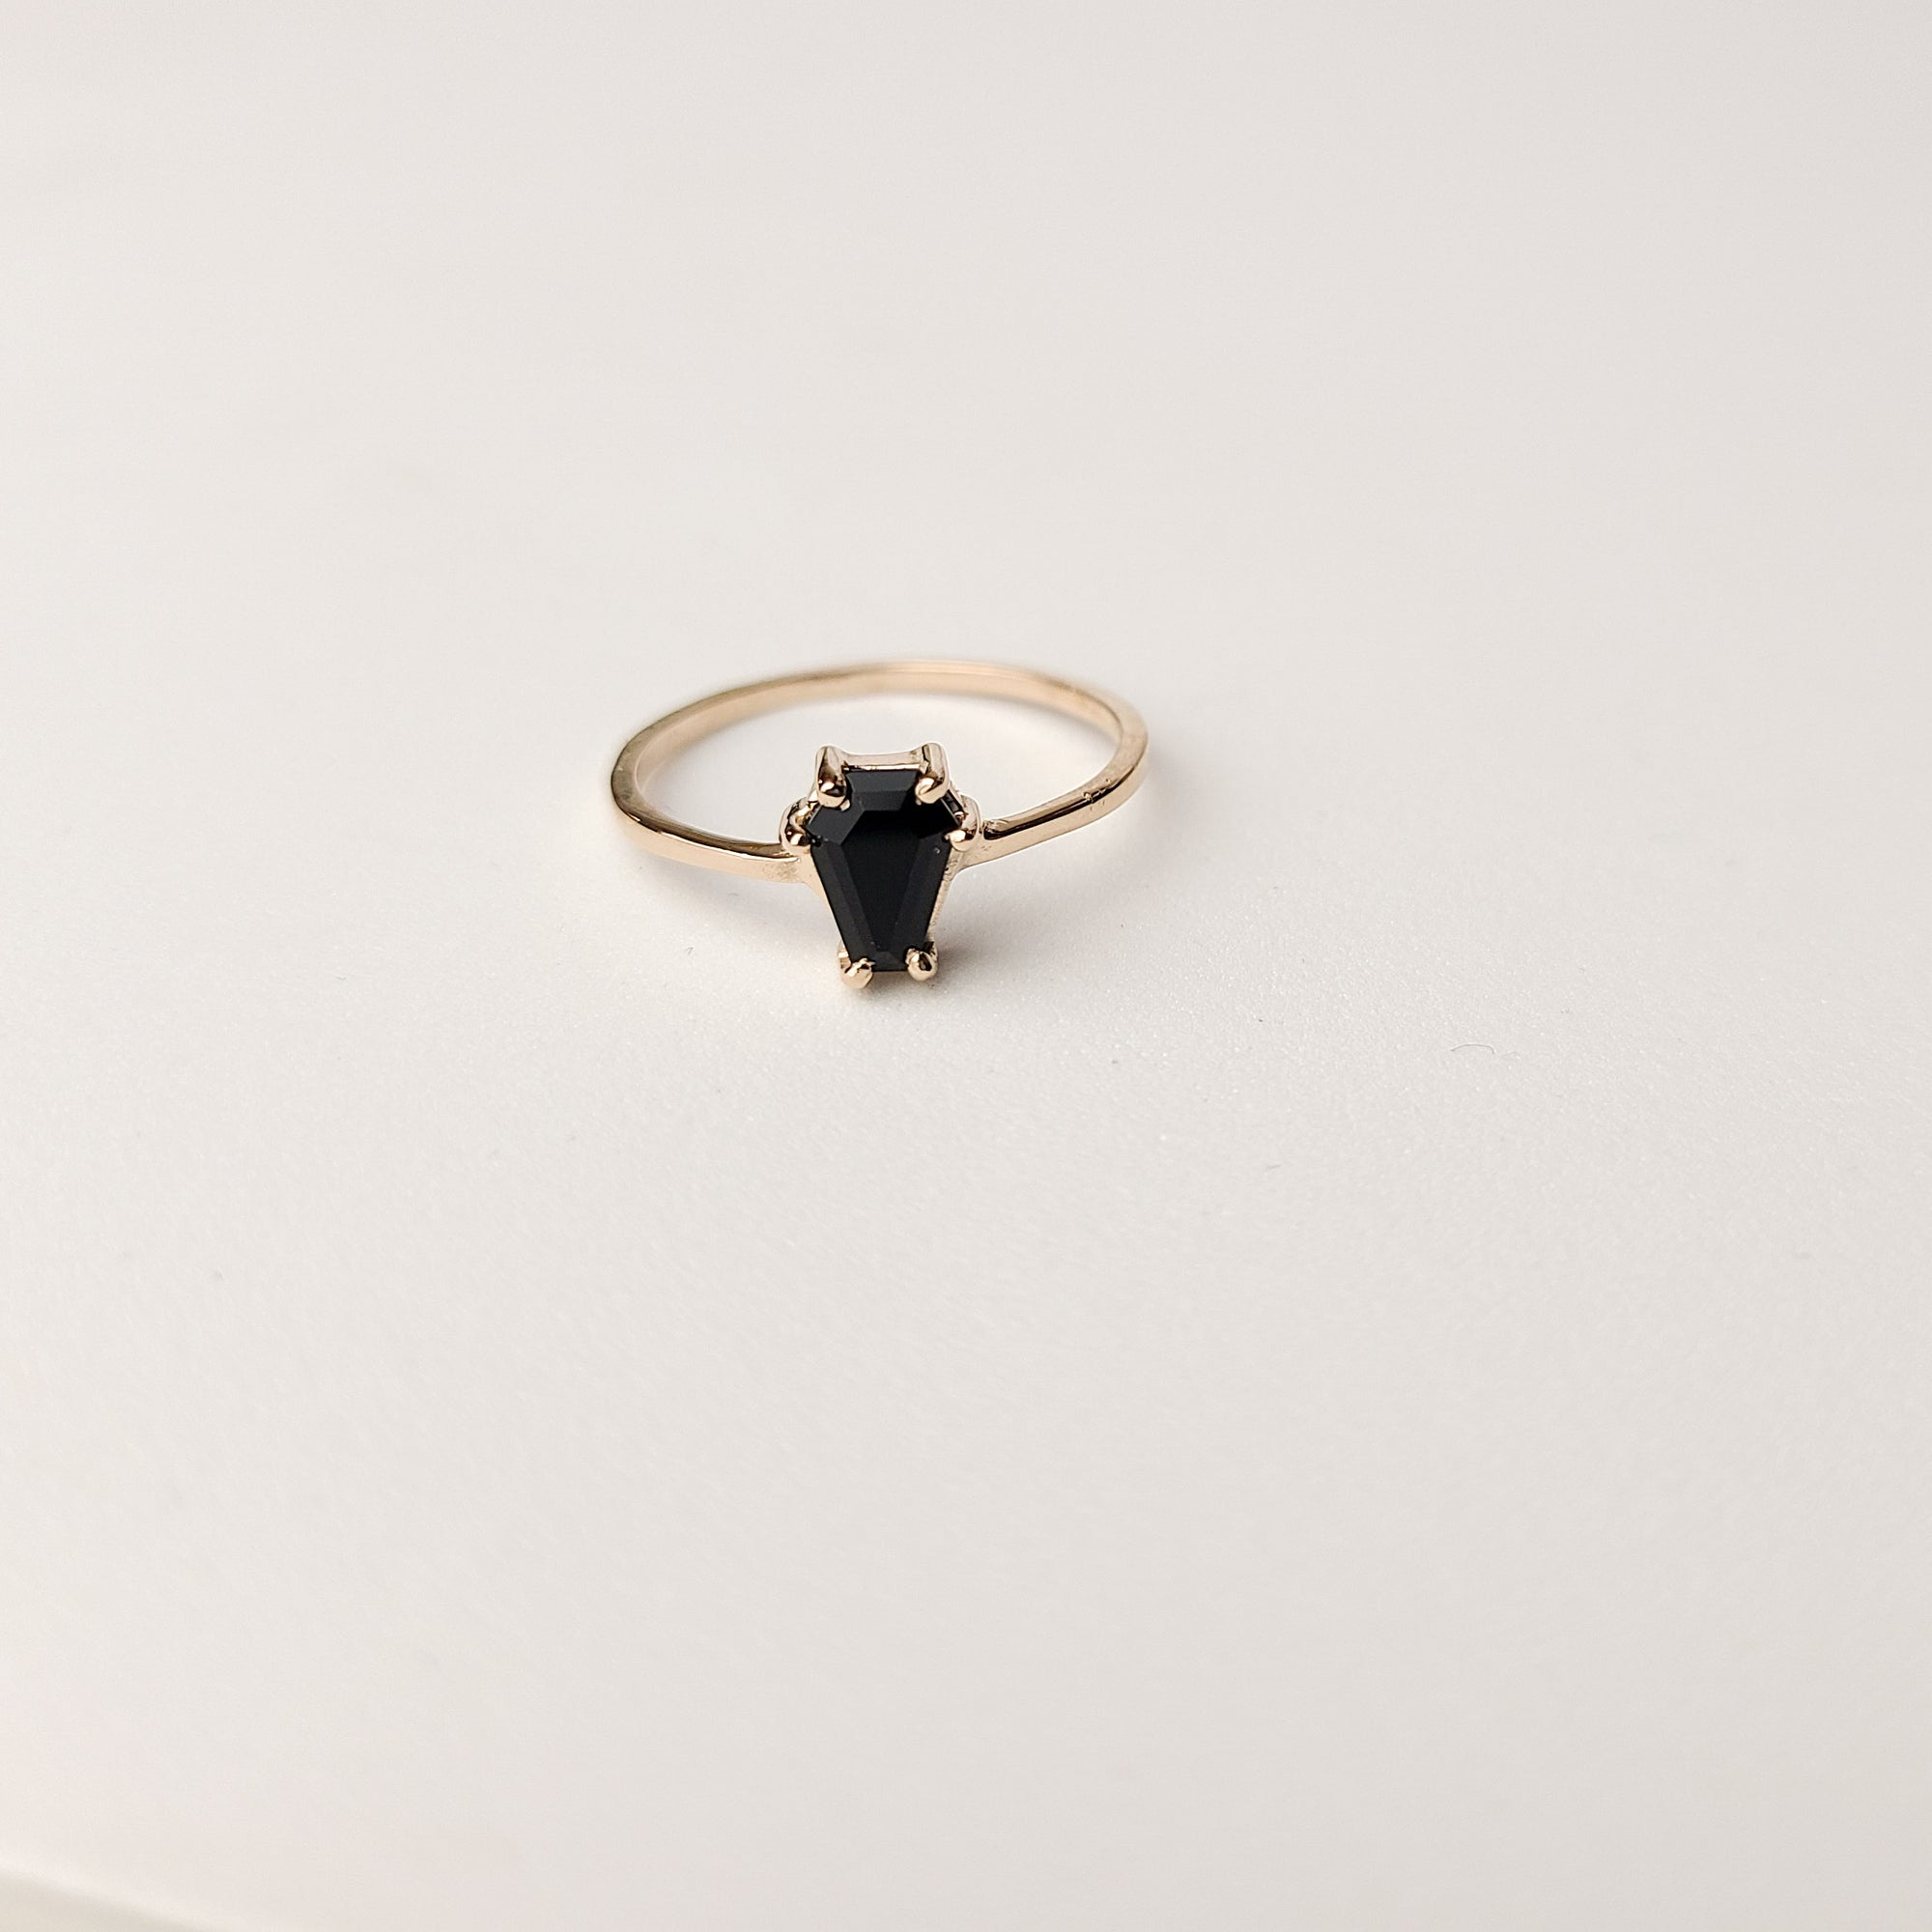 10K 14K Rose Gold Small Coffin Ring